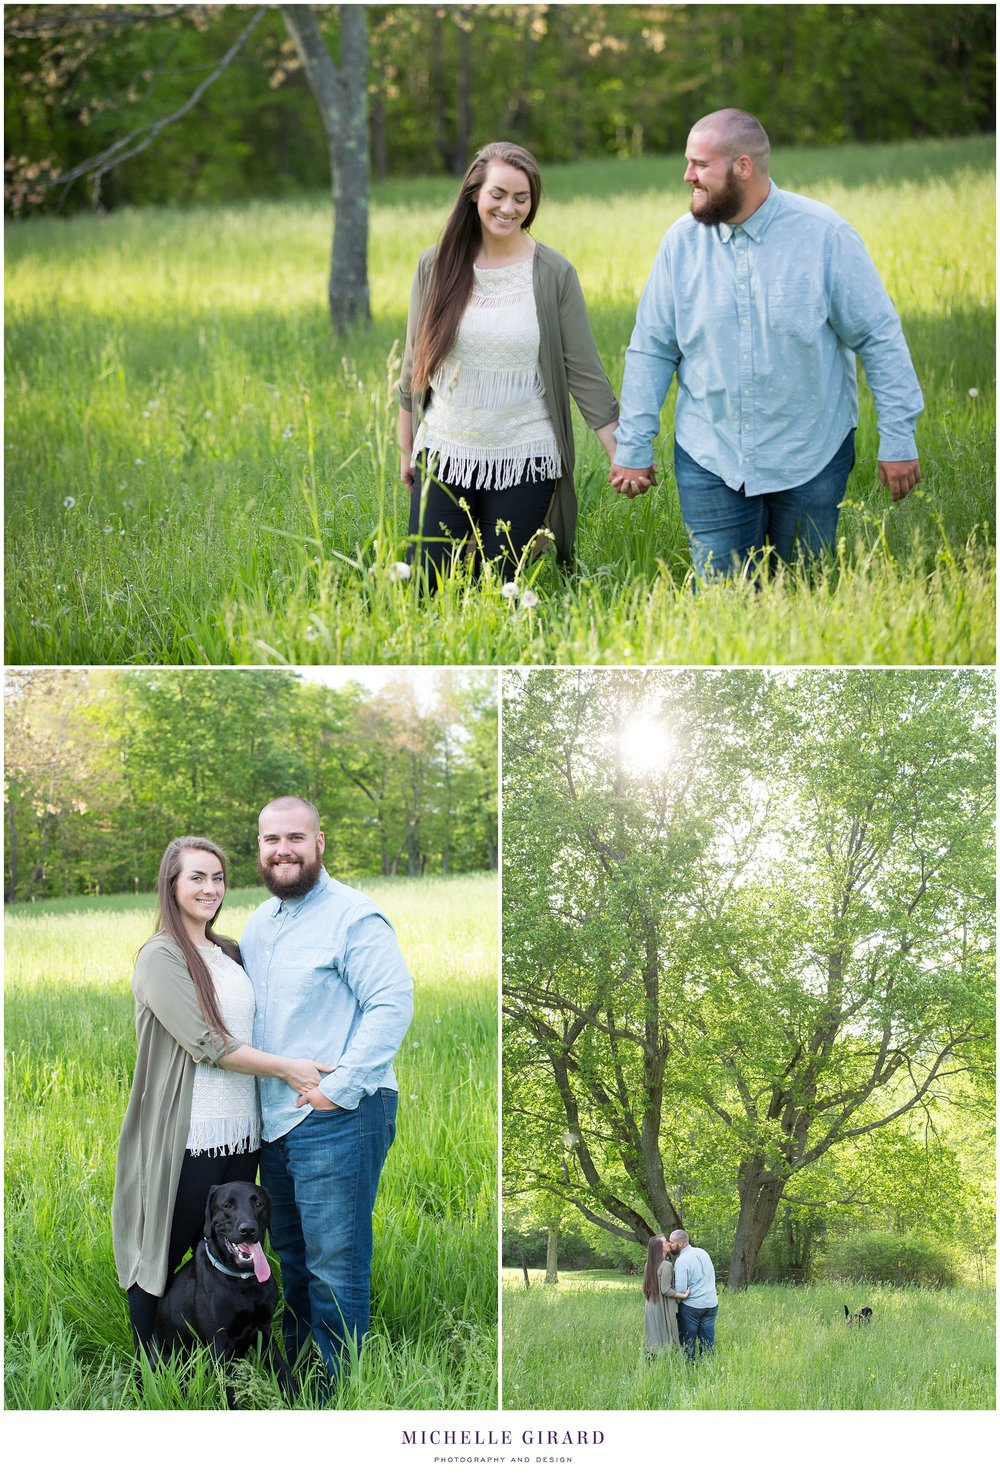 BackyardCountryEngagementSession_MichelleGirardPhotography01.jpg